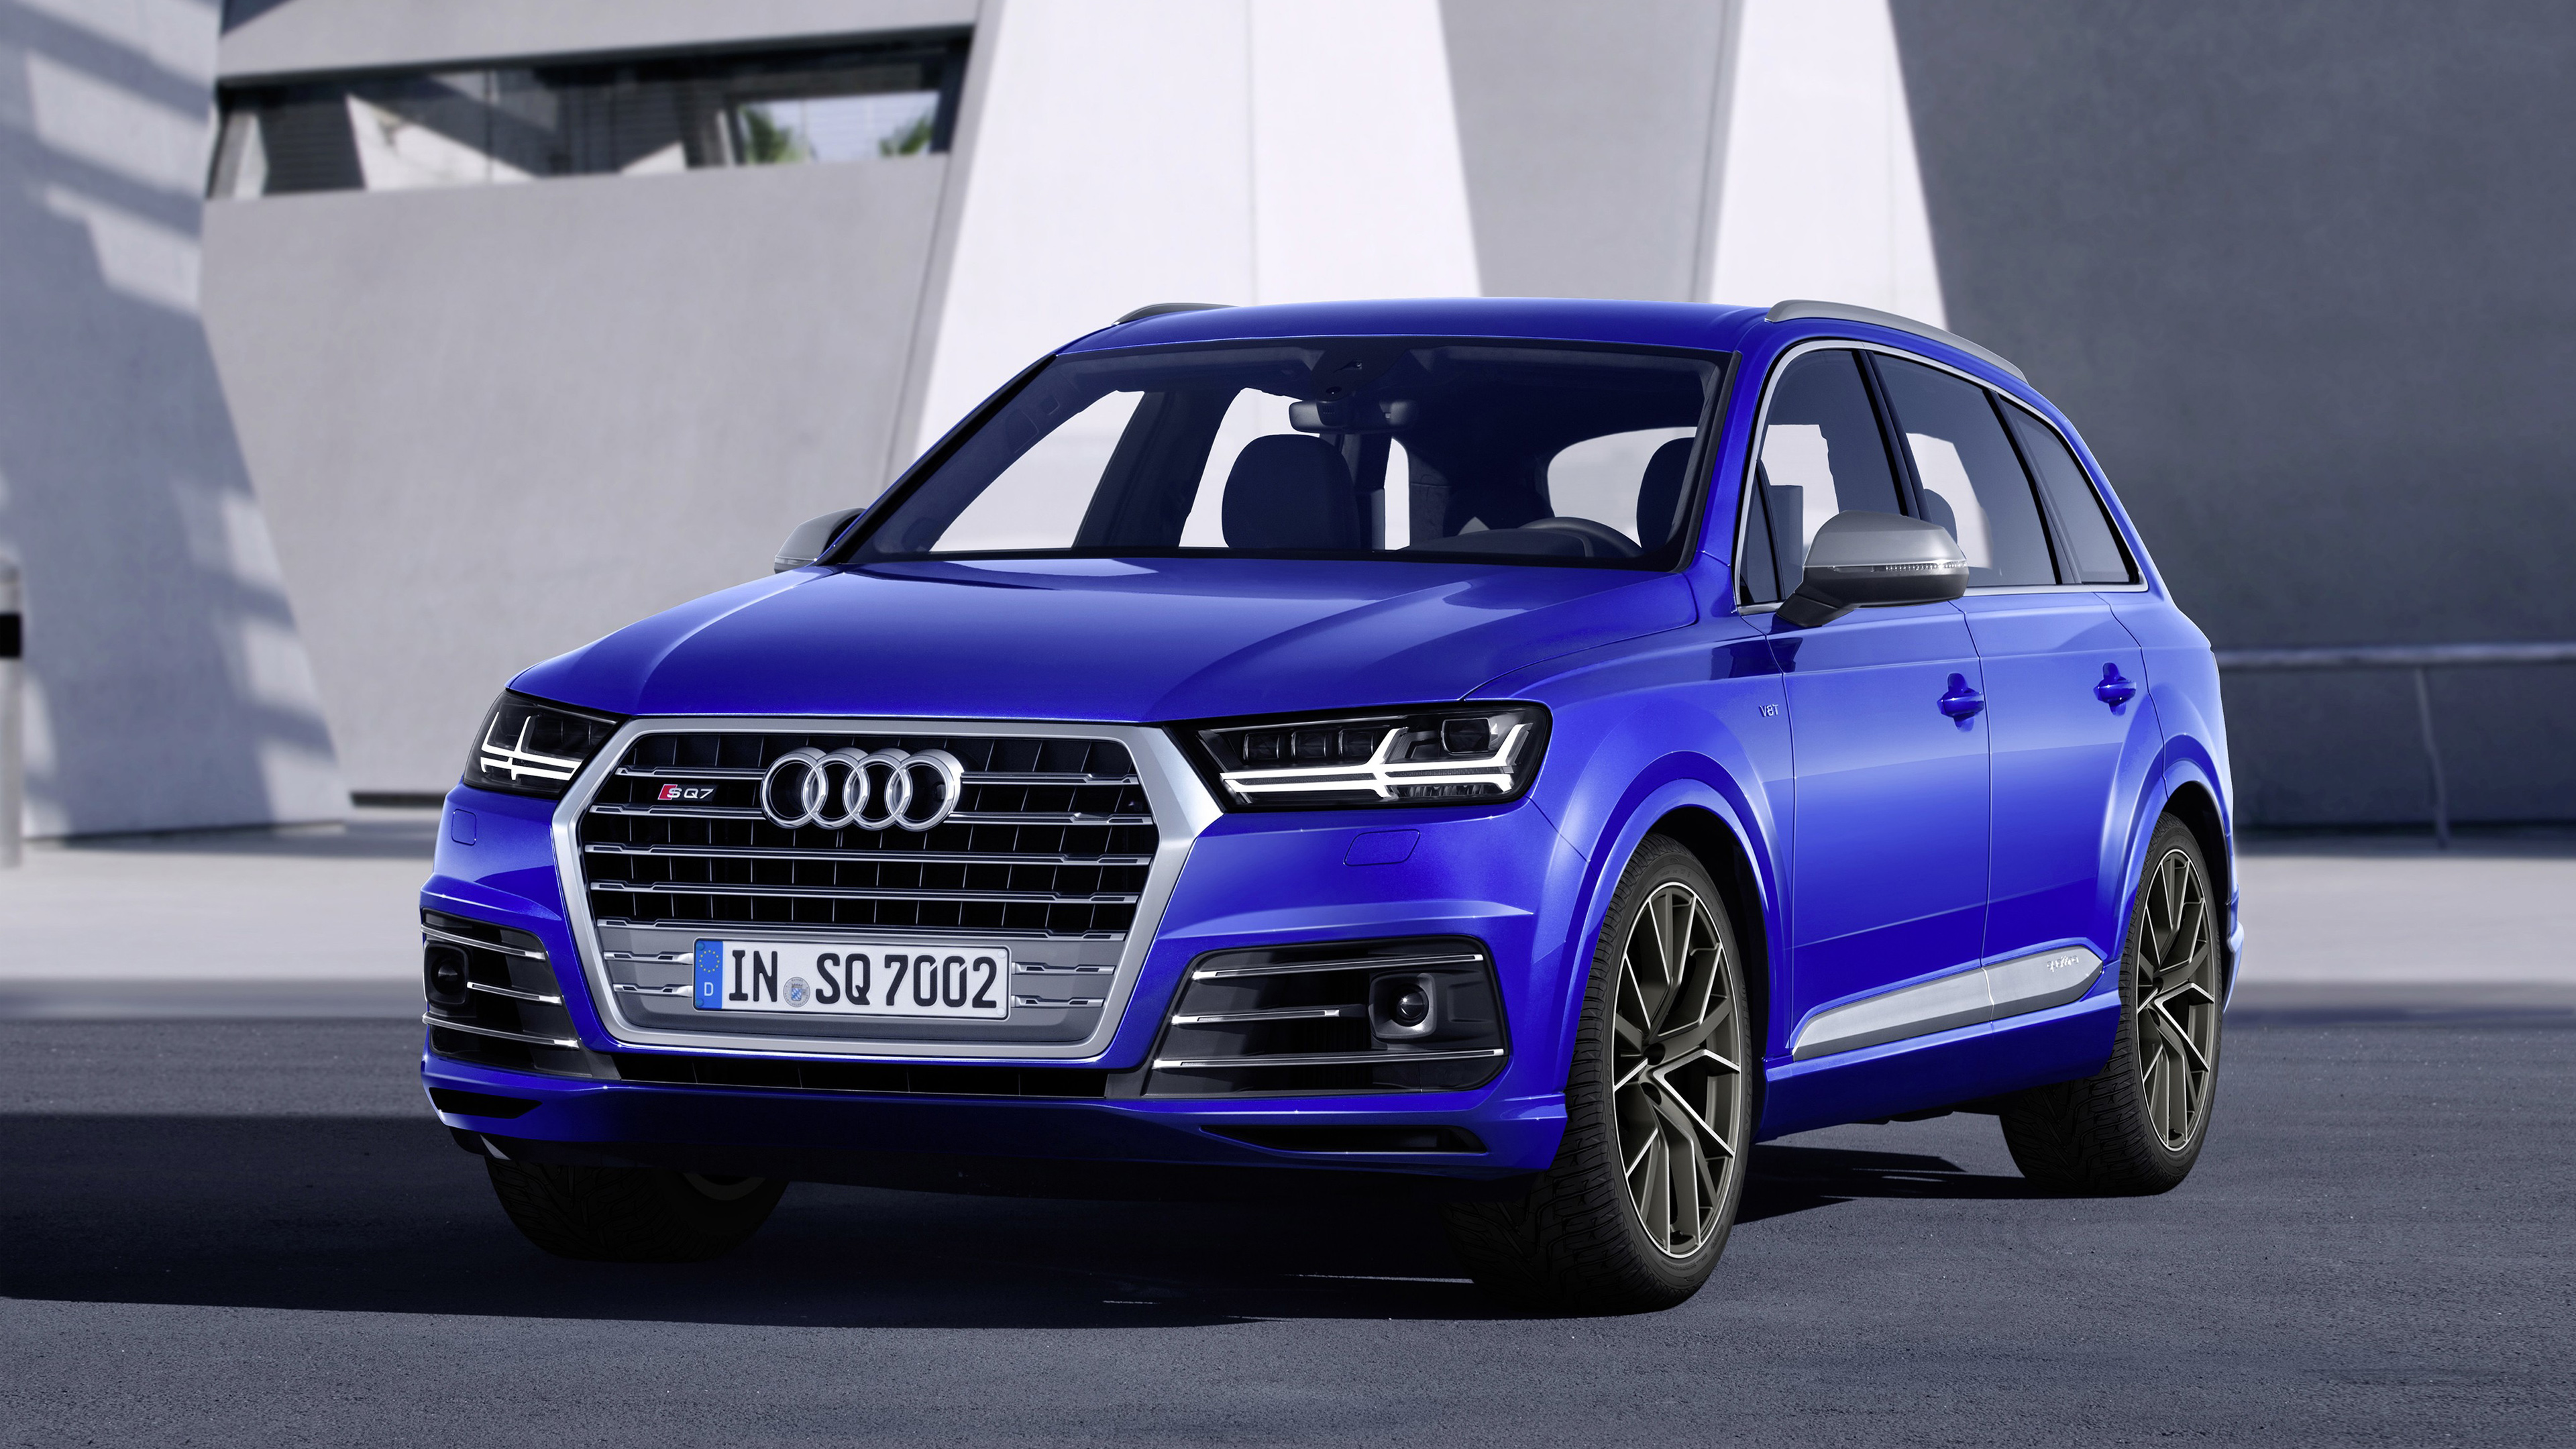 2017 Audi Sq7 Tdi Wallpaper Hd Car Wallpapers